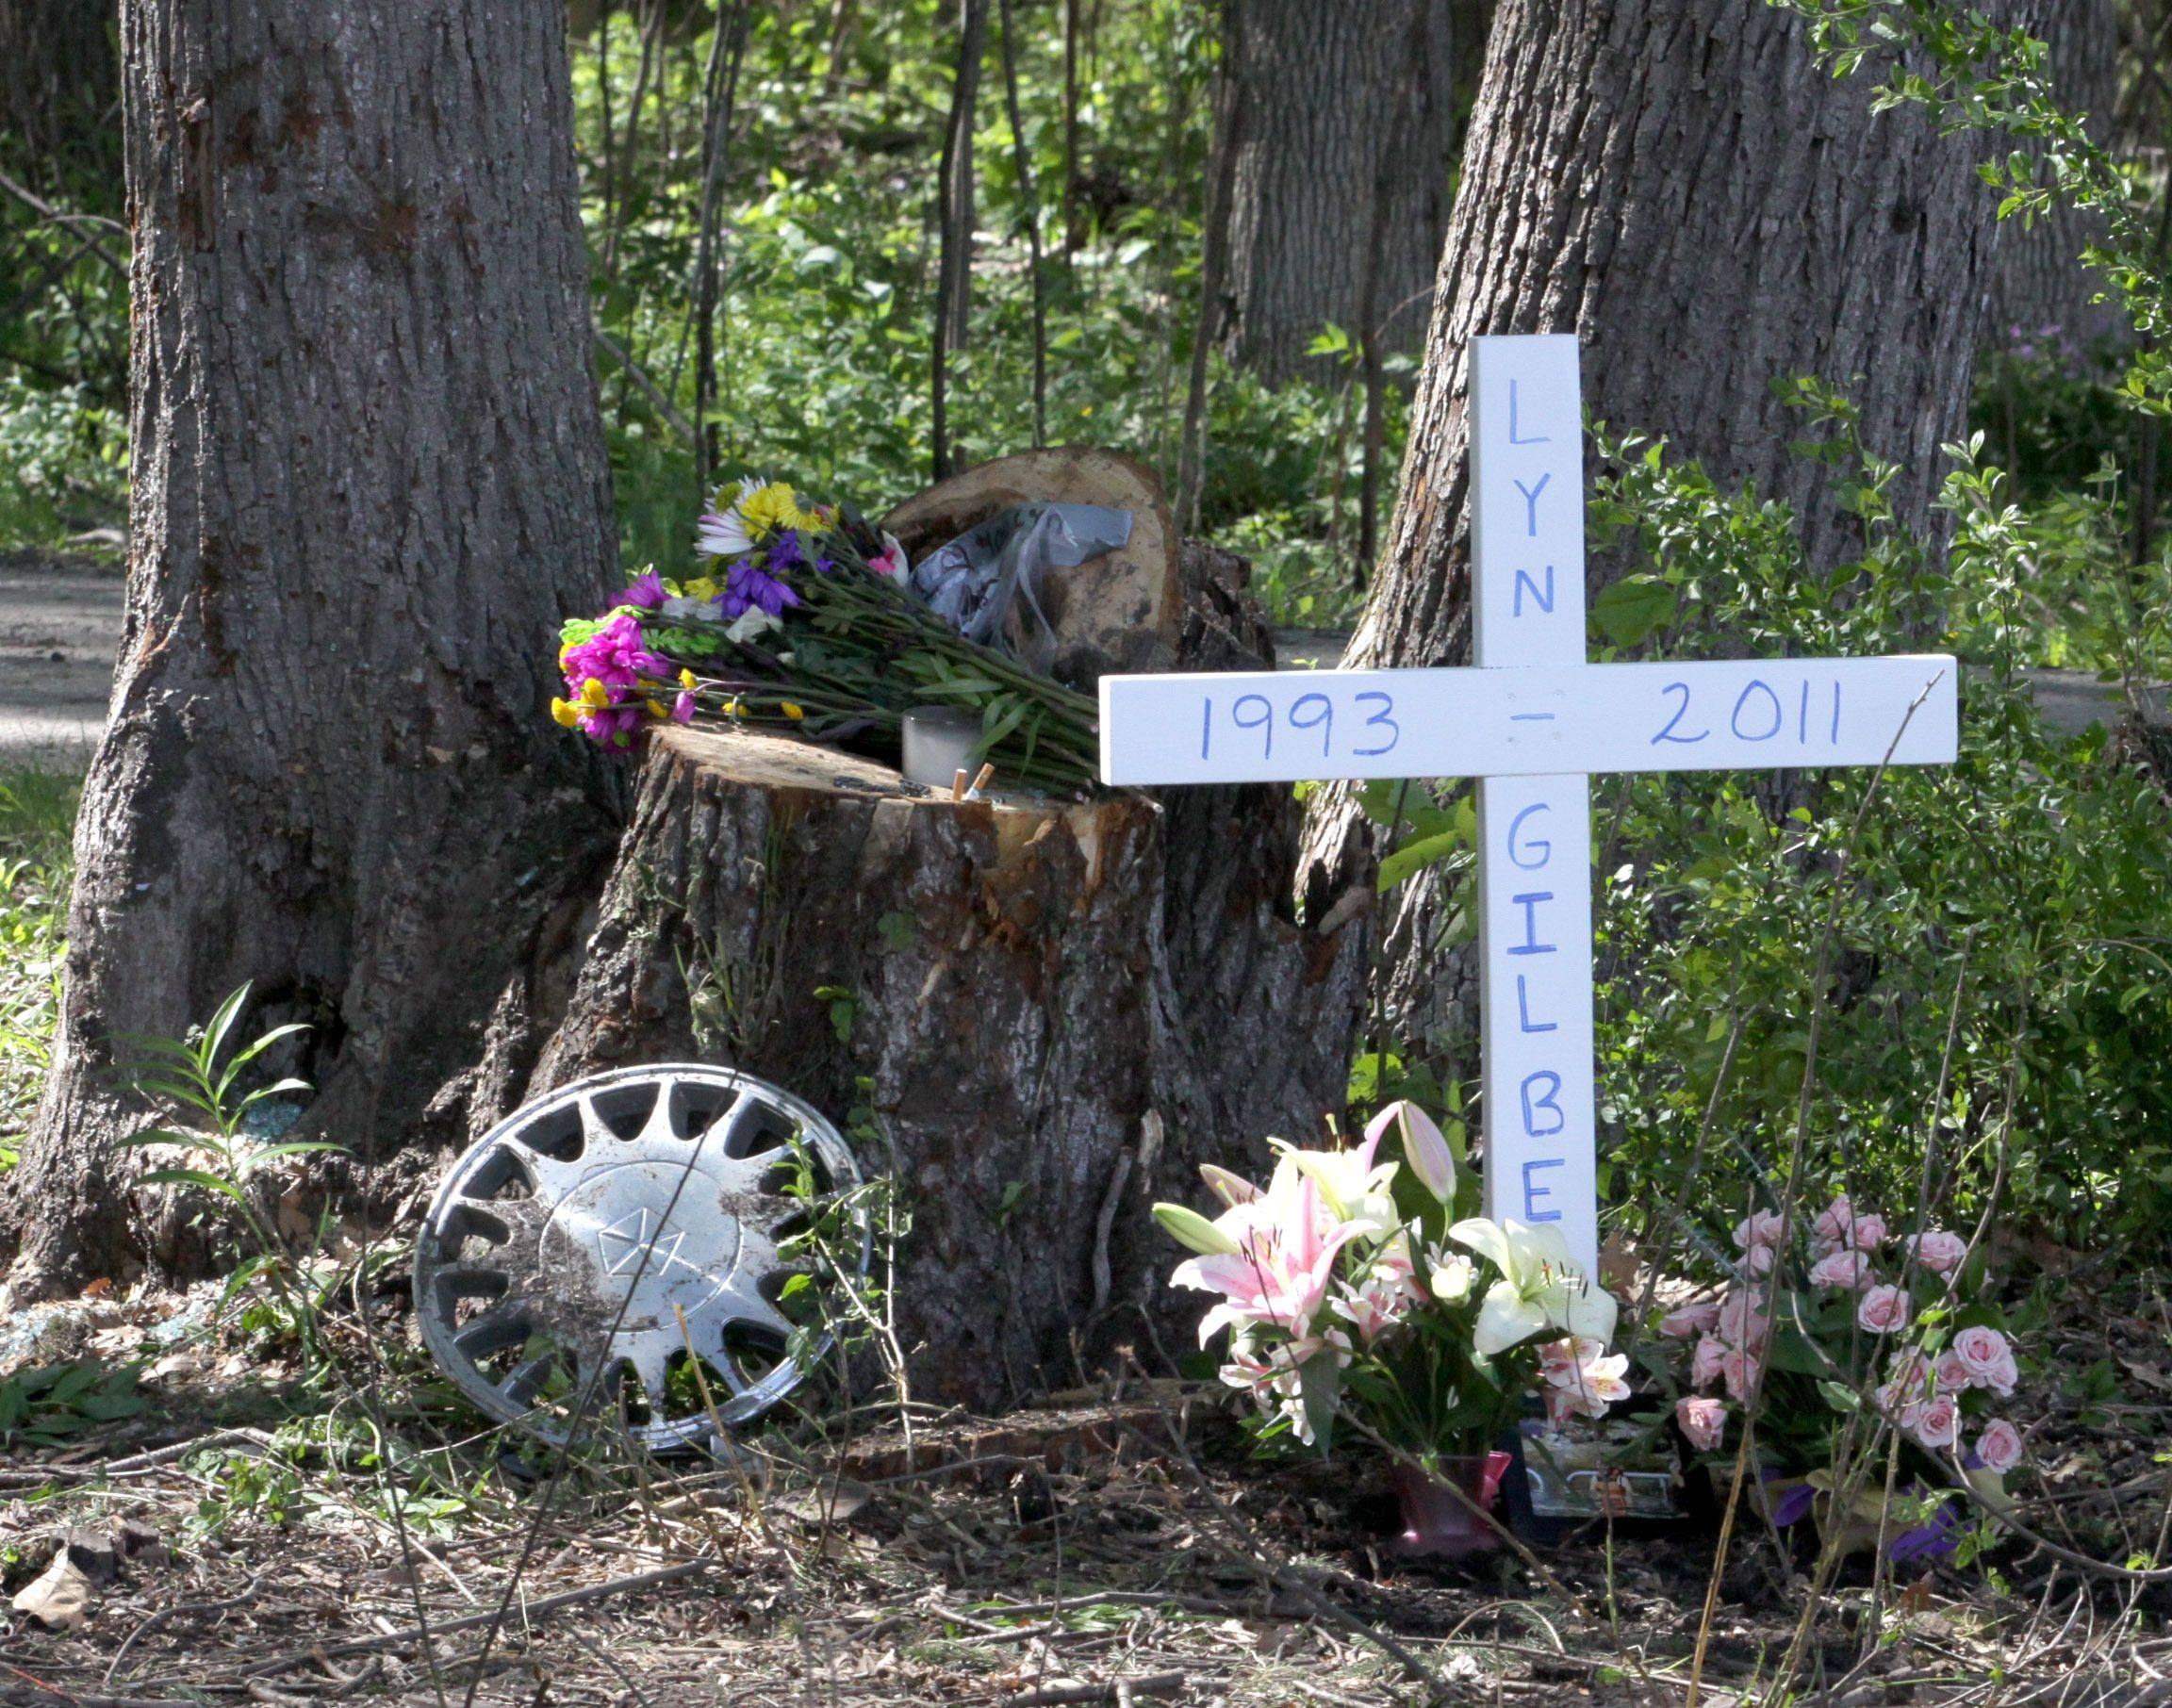 A memorial was placed at the scene soon after a May 16 car accident in Elburn in which 17-year-old Lynlee Gilbert of Batavia died.